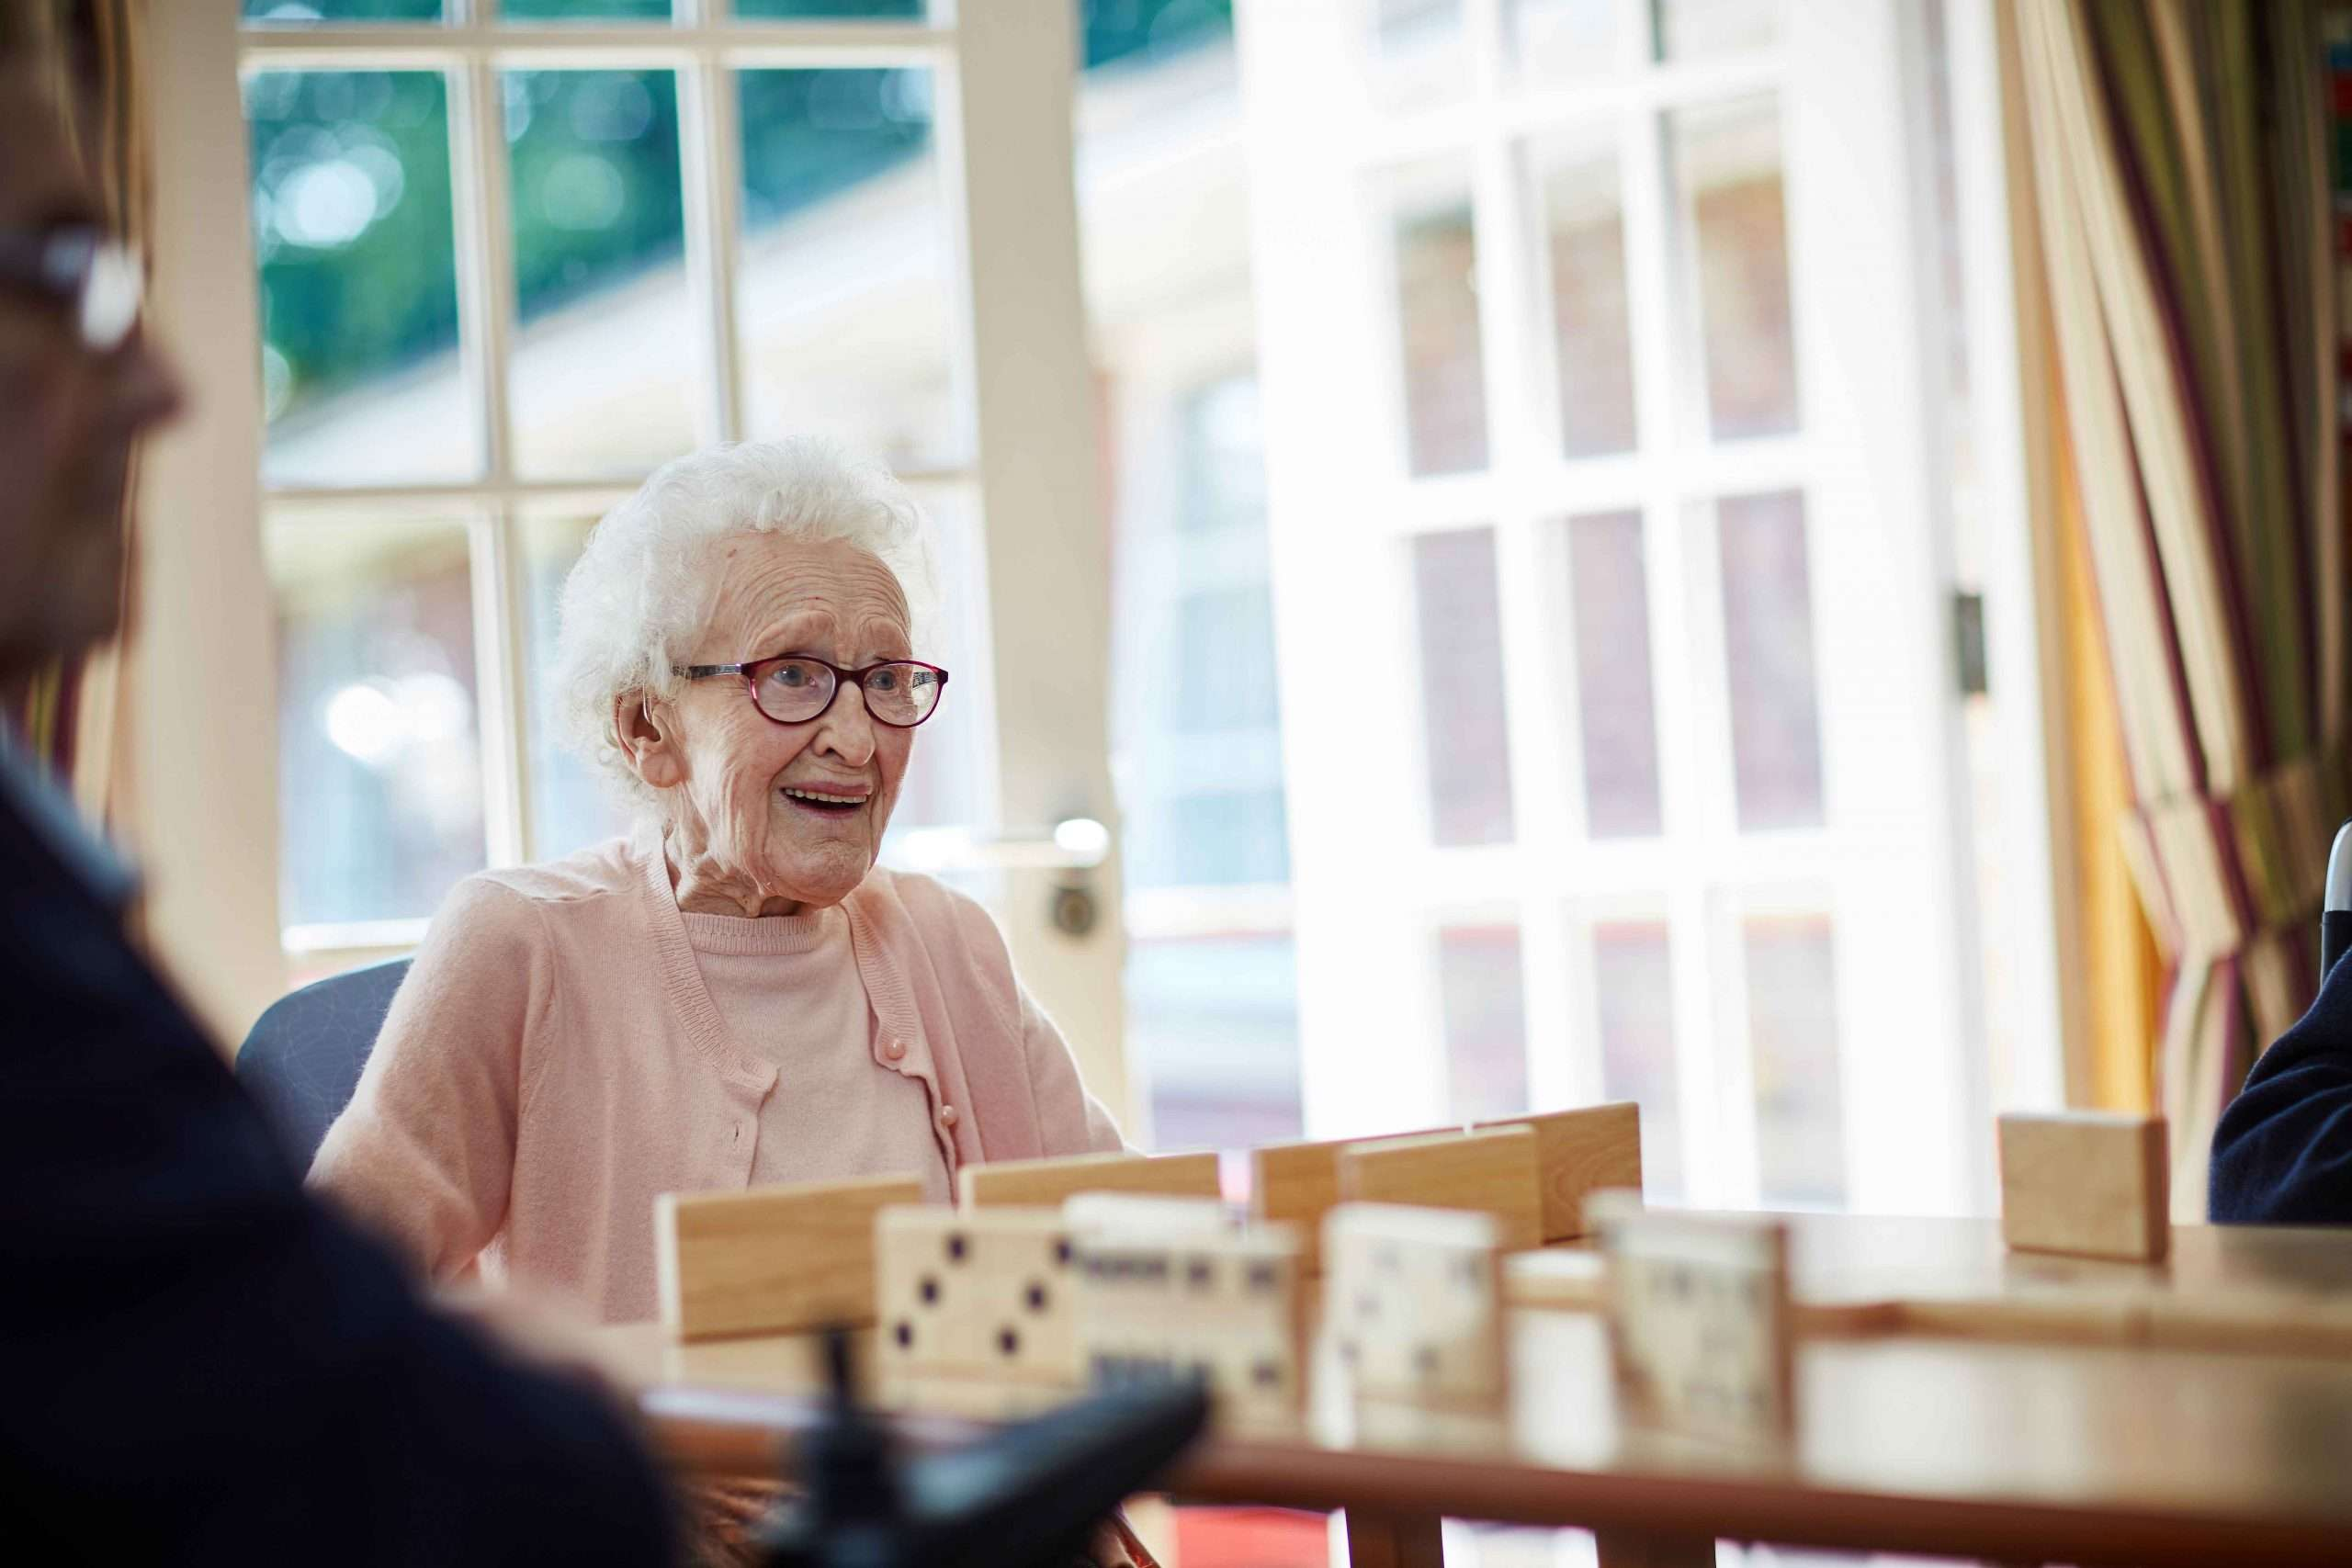 Resident smiling playing game